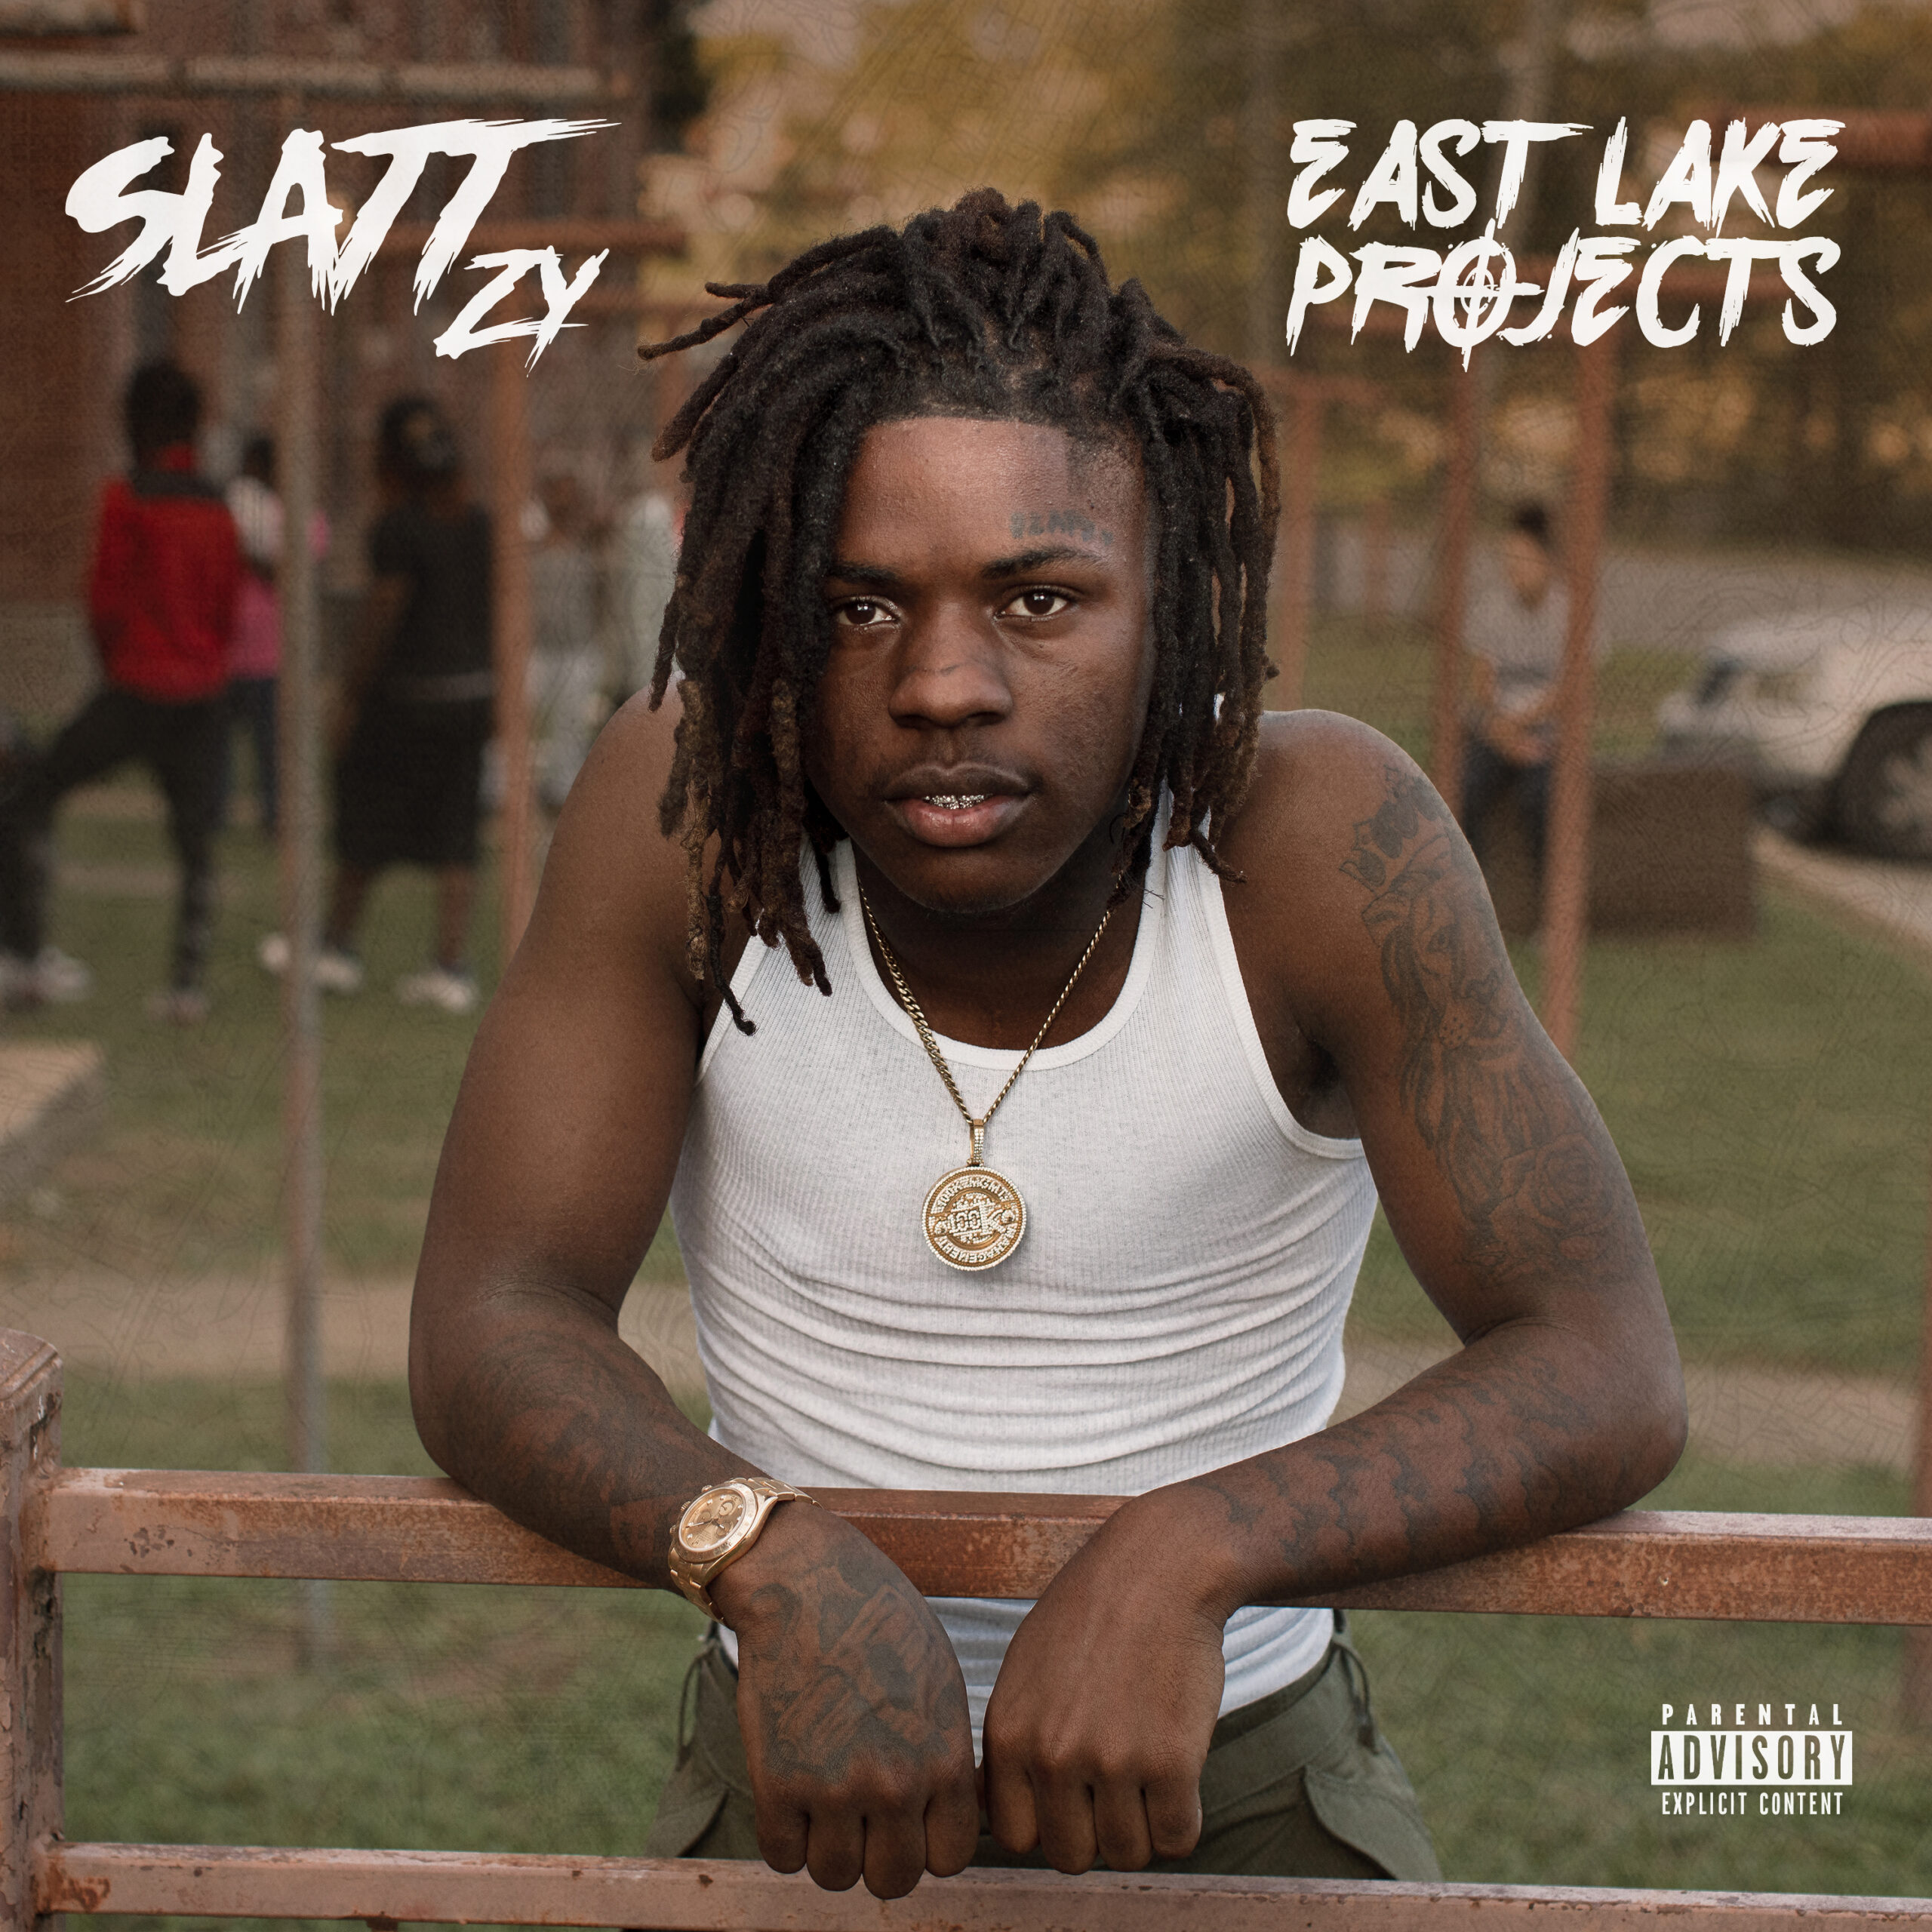 Slatt Zy - East Lake Projects